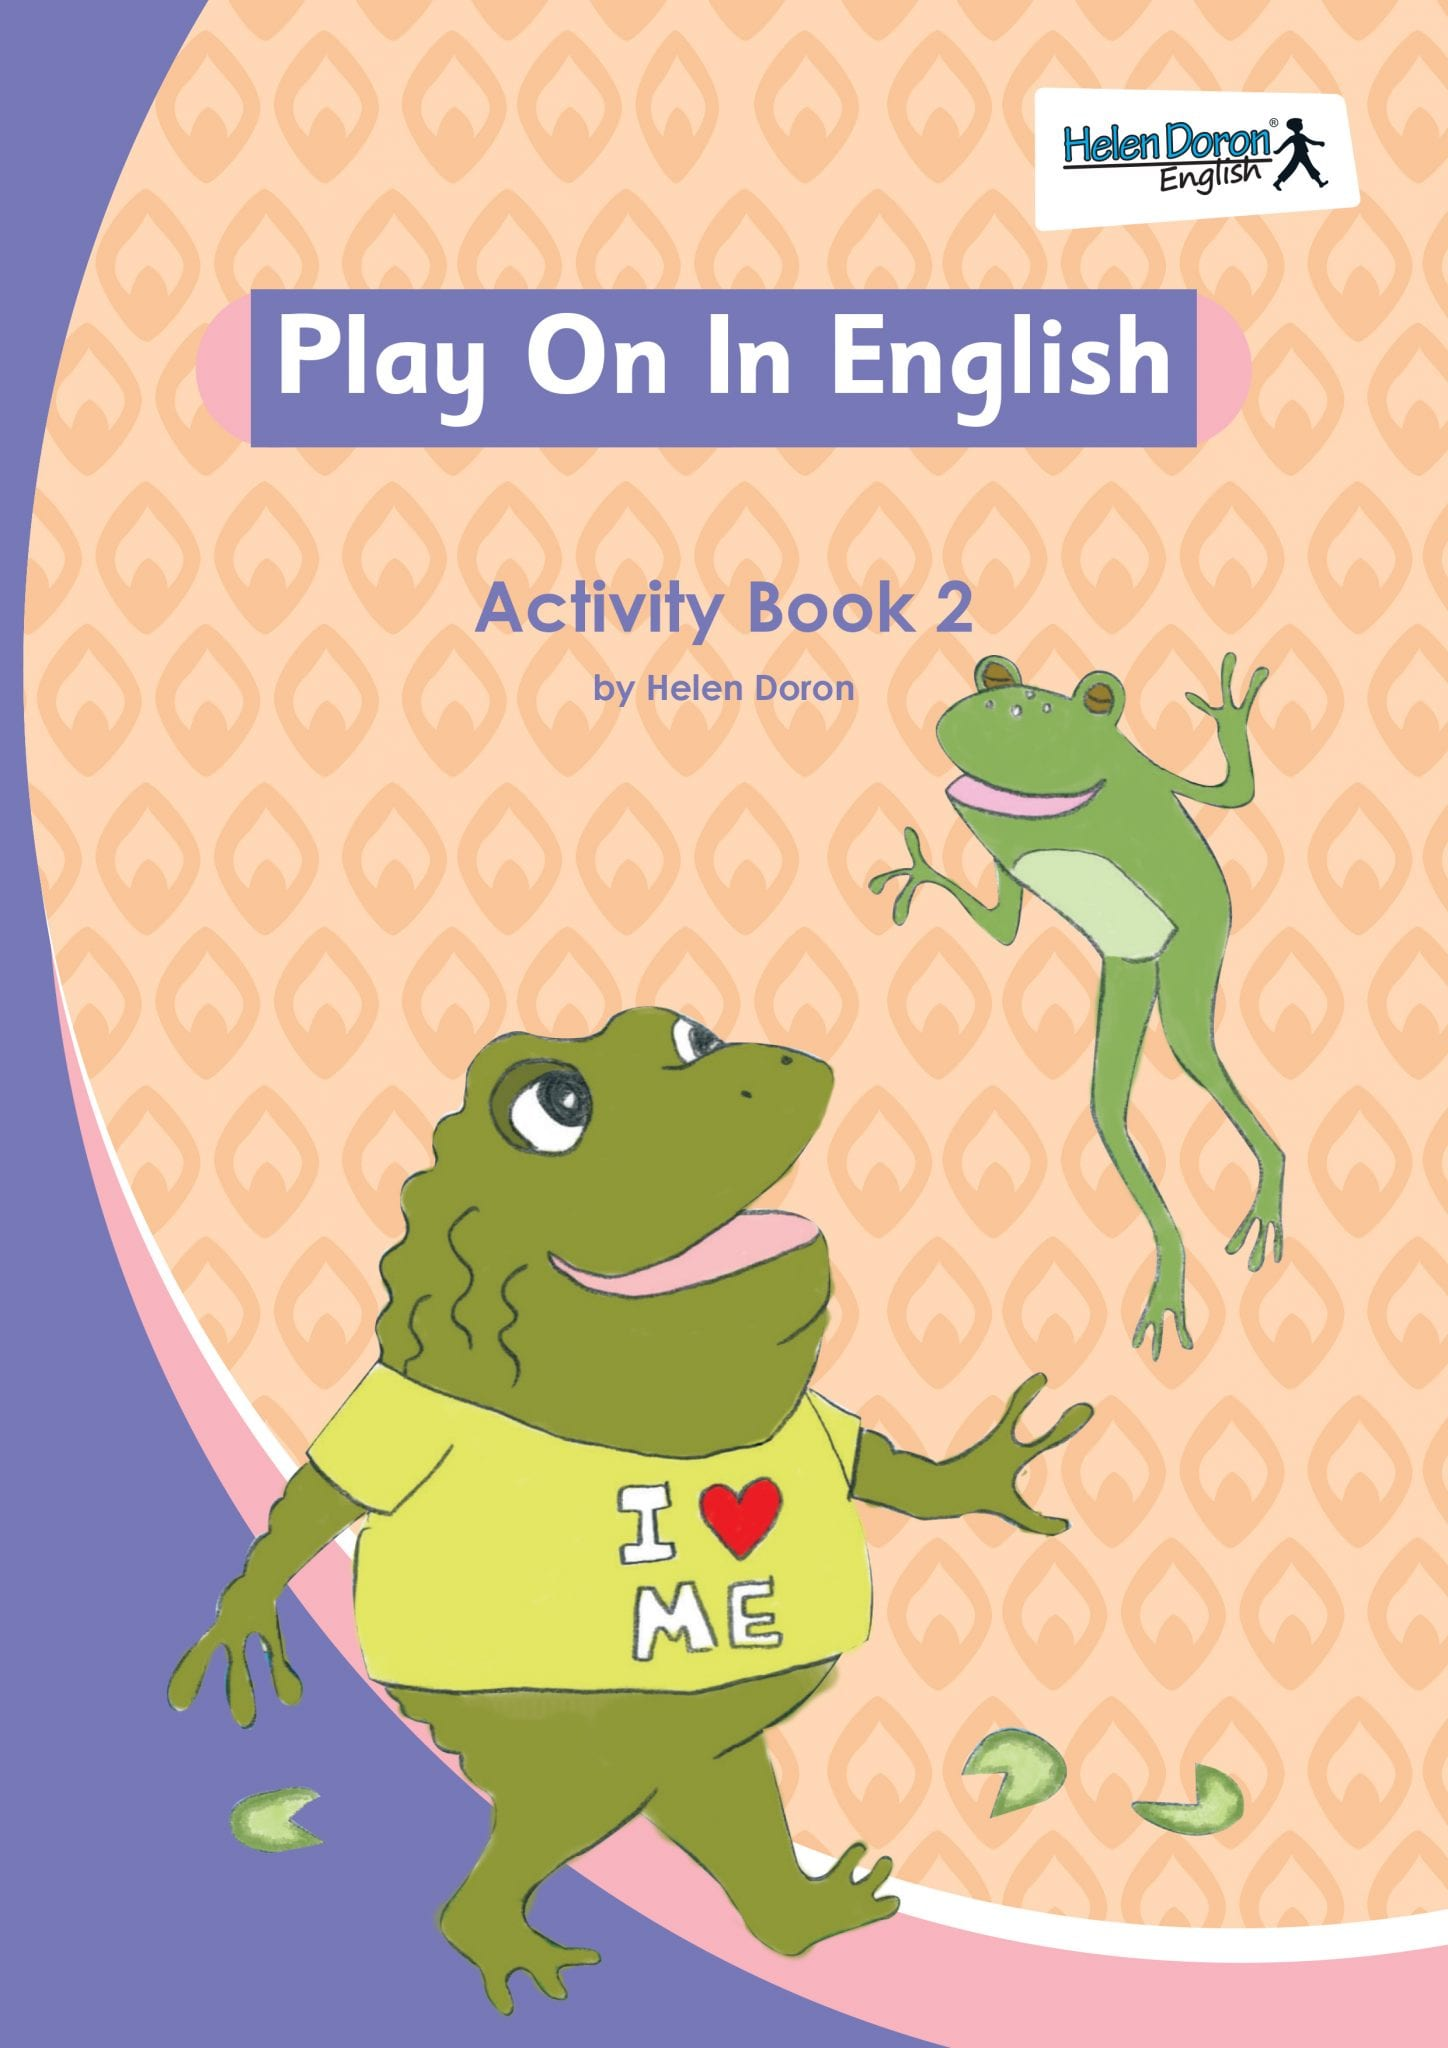 Play On in English Holiday Course